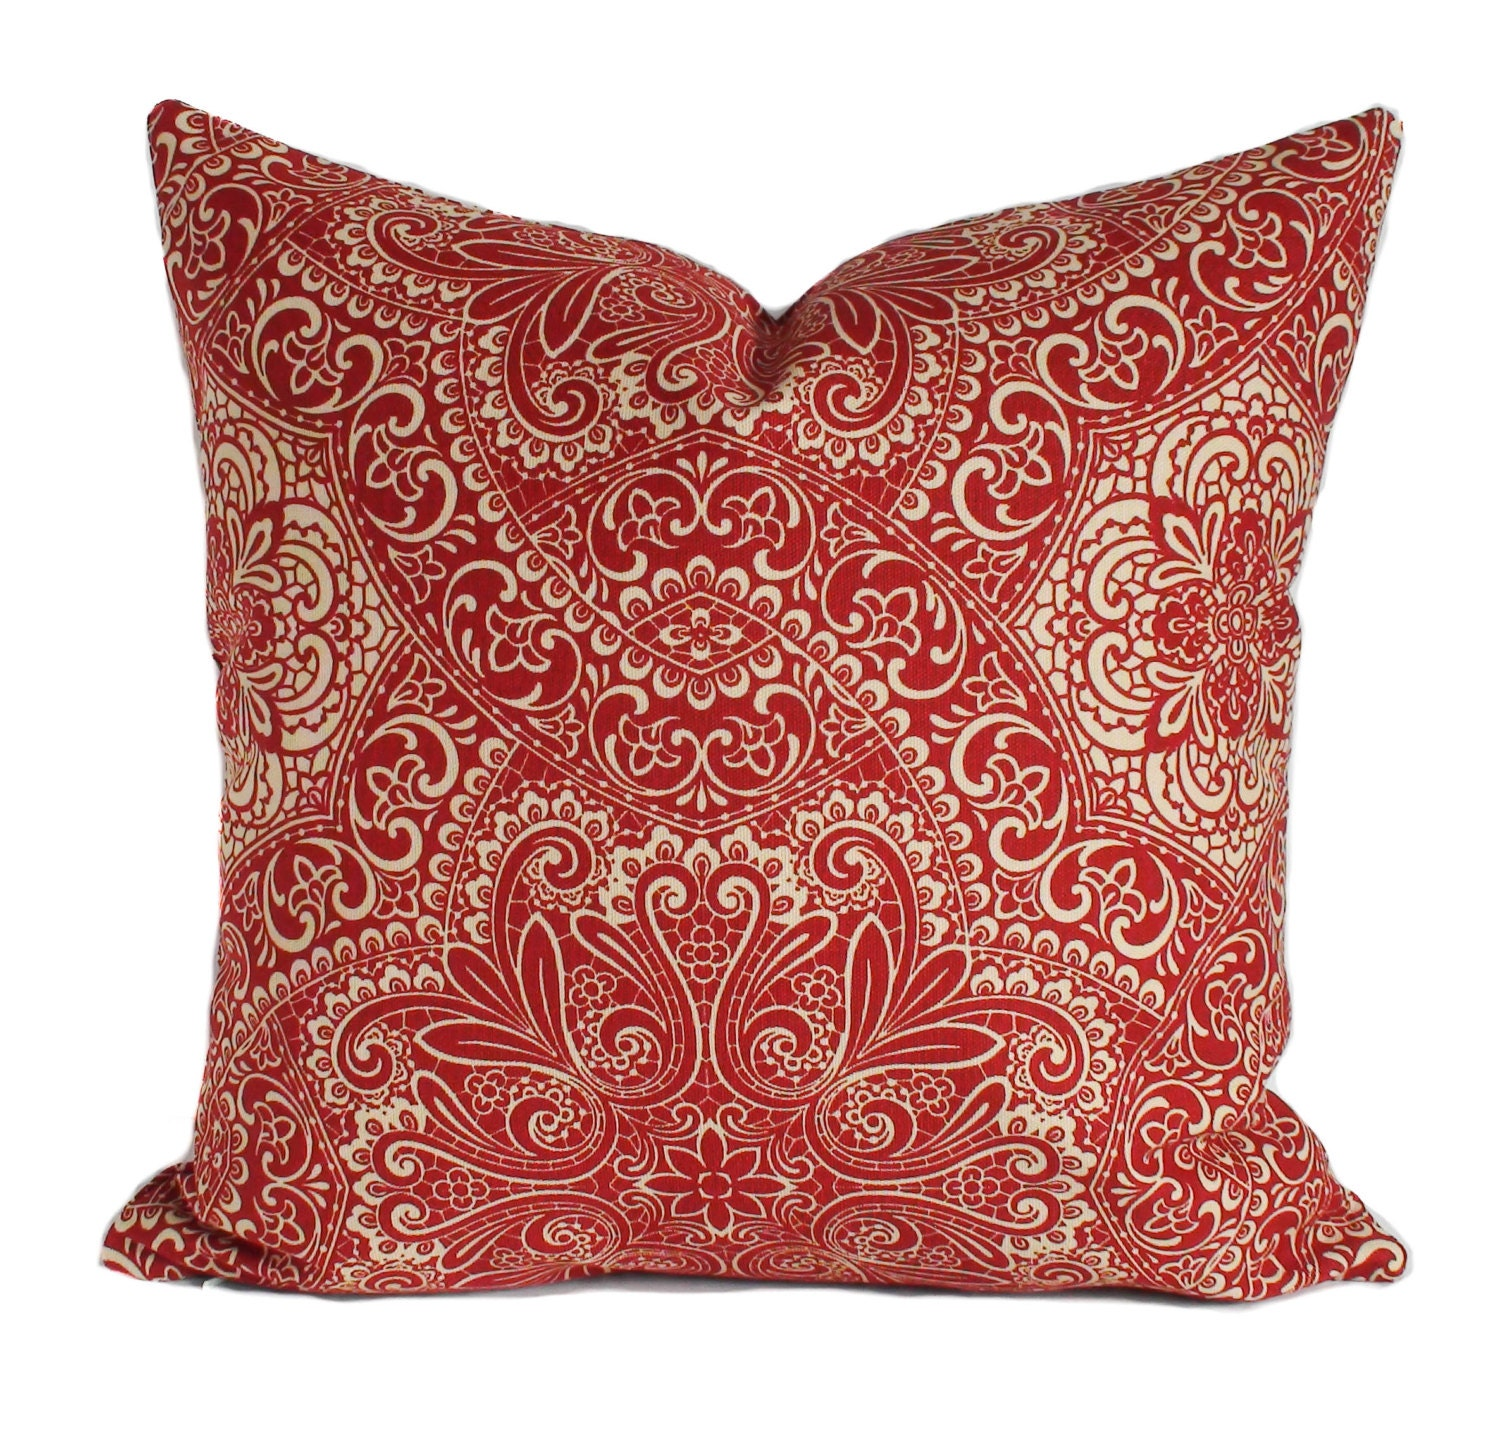 Decorative Pillows Images : Red pillow cover Decorative pillow Red throw pillow